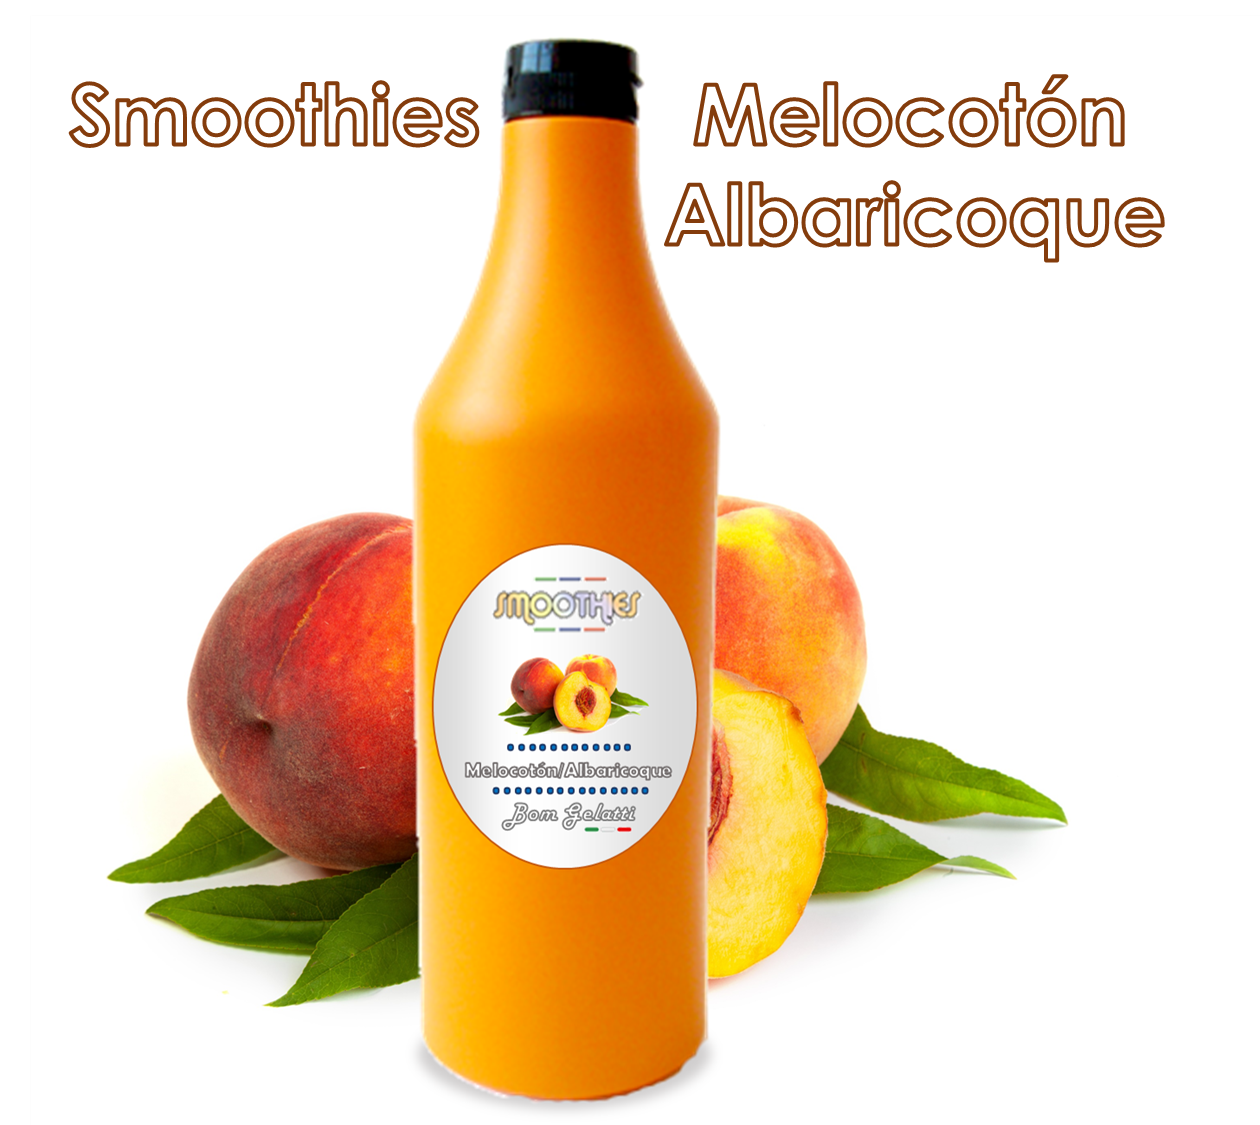 Smoothies Melocotón Albaricoque.